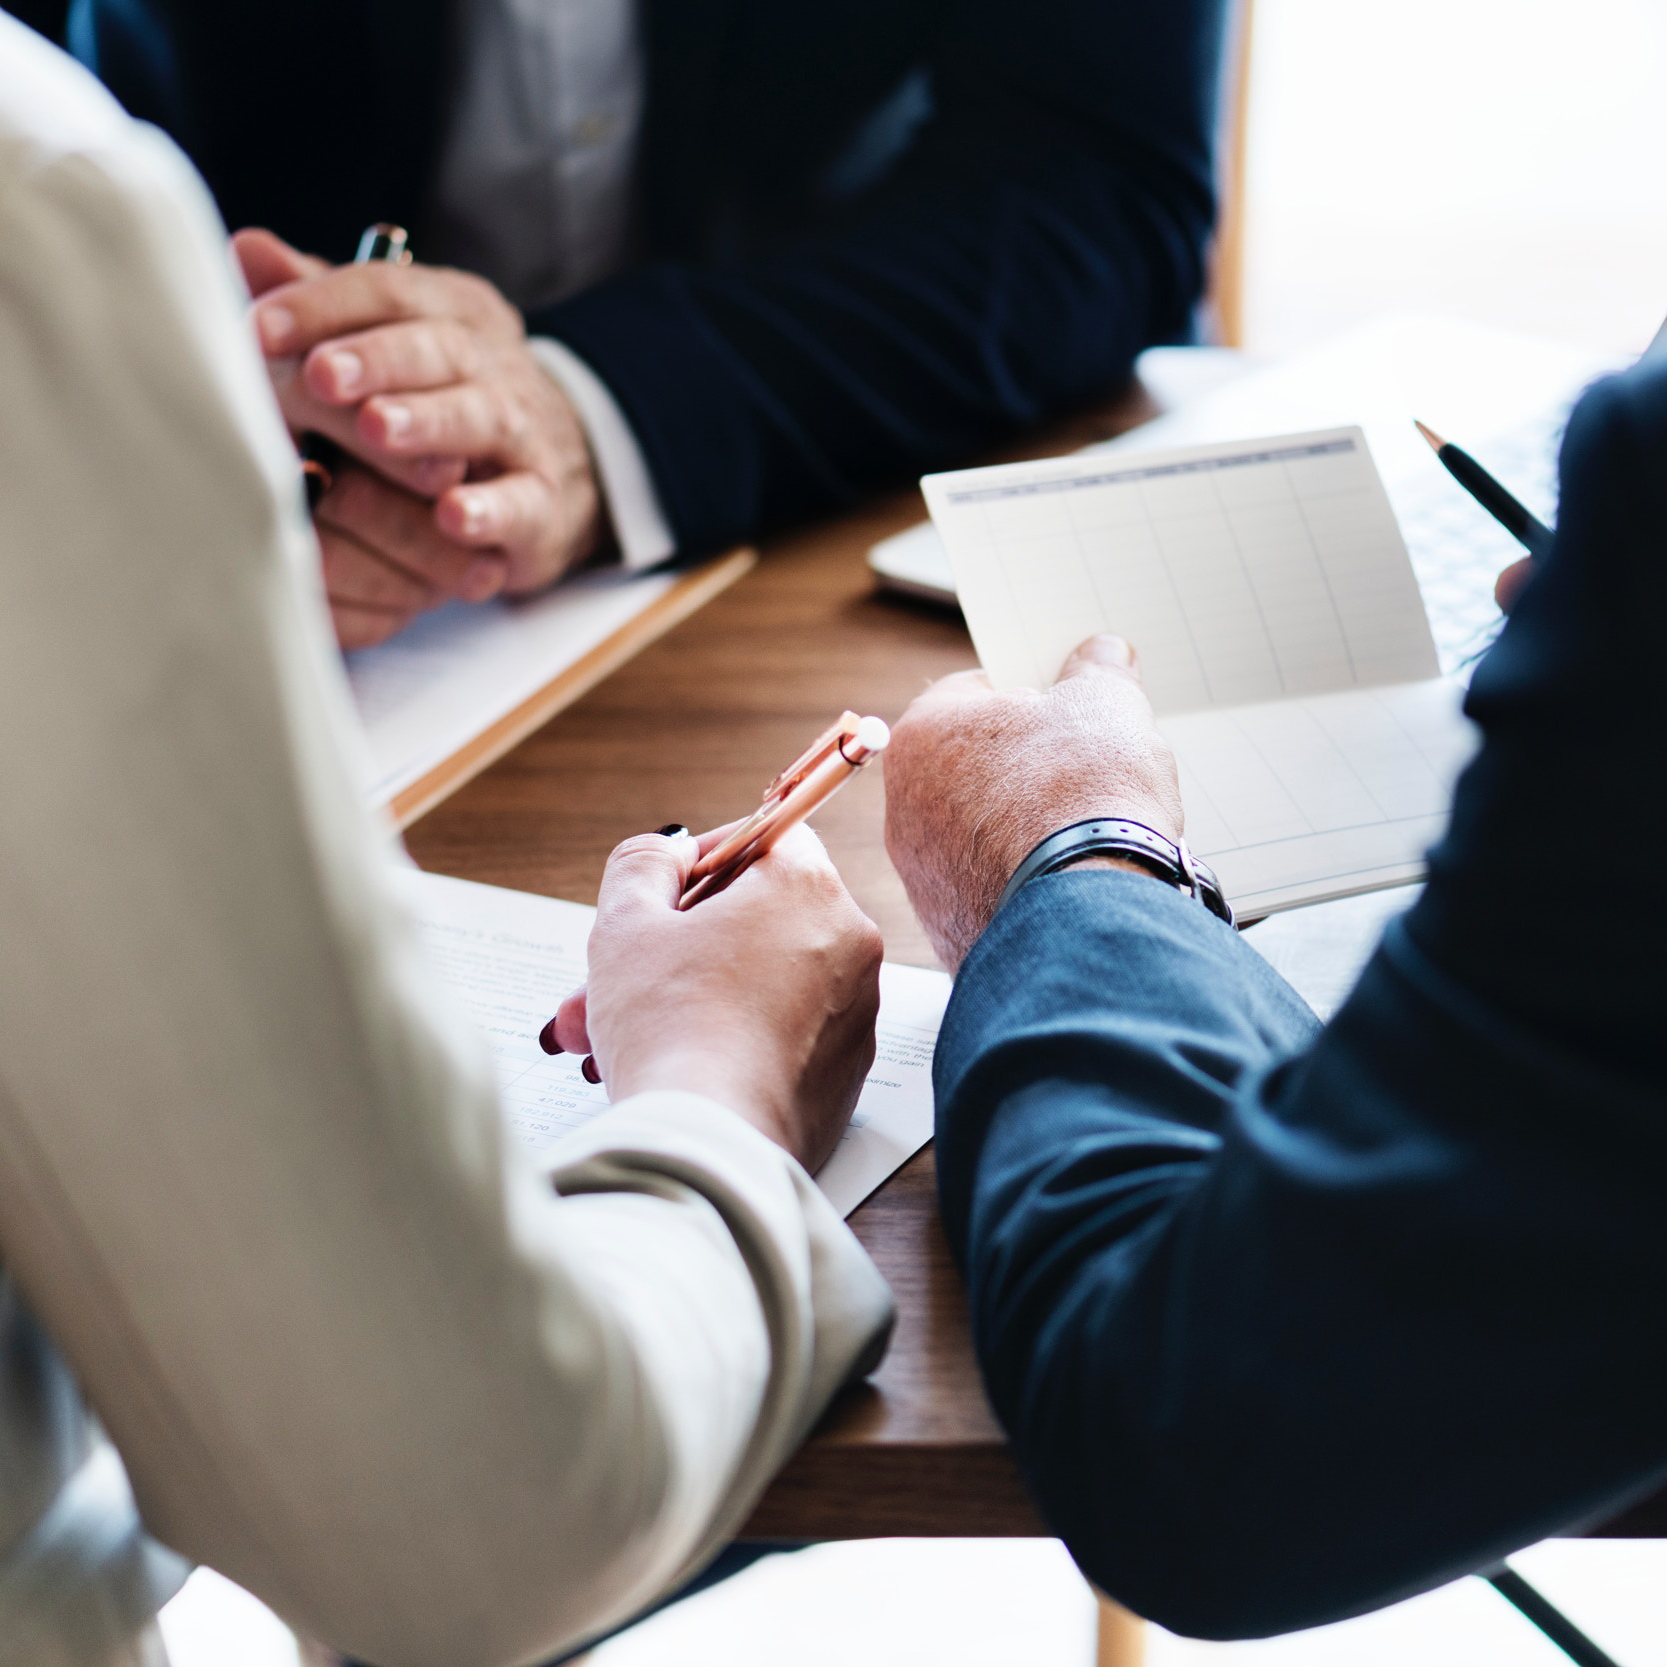 The interview process - Our interview process is more than just a sit down discussion. We bring the candidates in, do a formal interview, and send them with homework. All potential candidates will take the LifeSquire Personality Test and the StrengthFinders test.